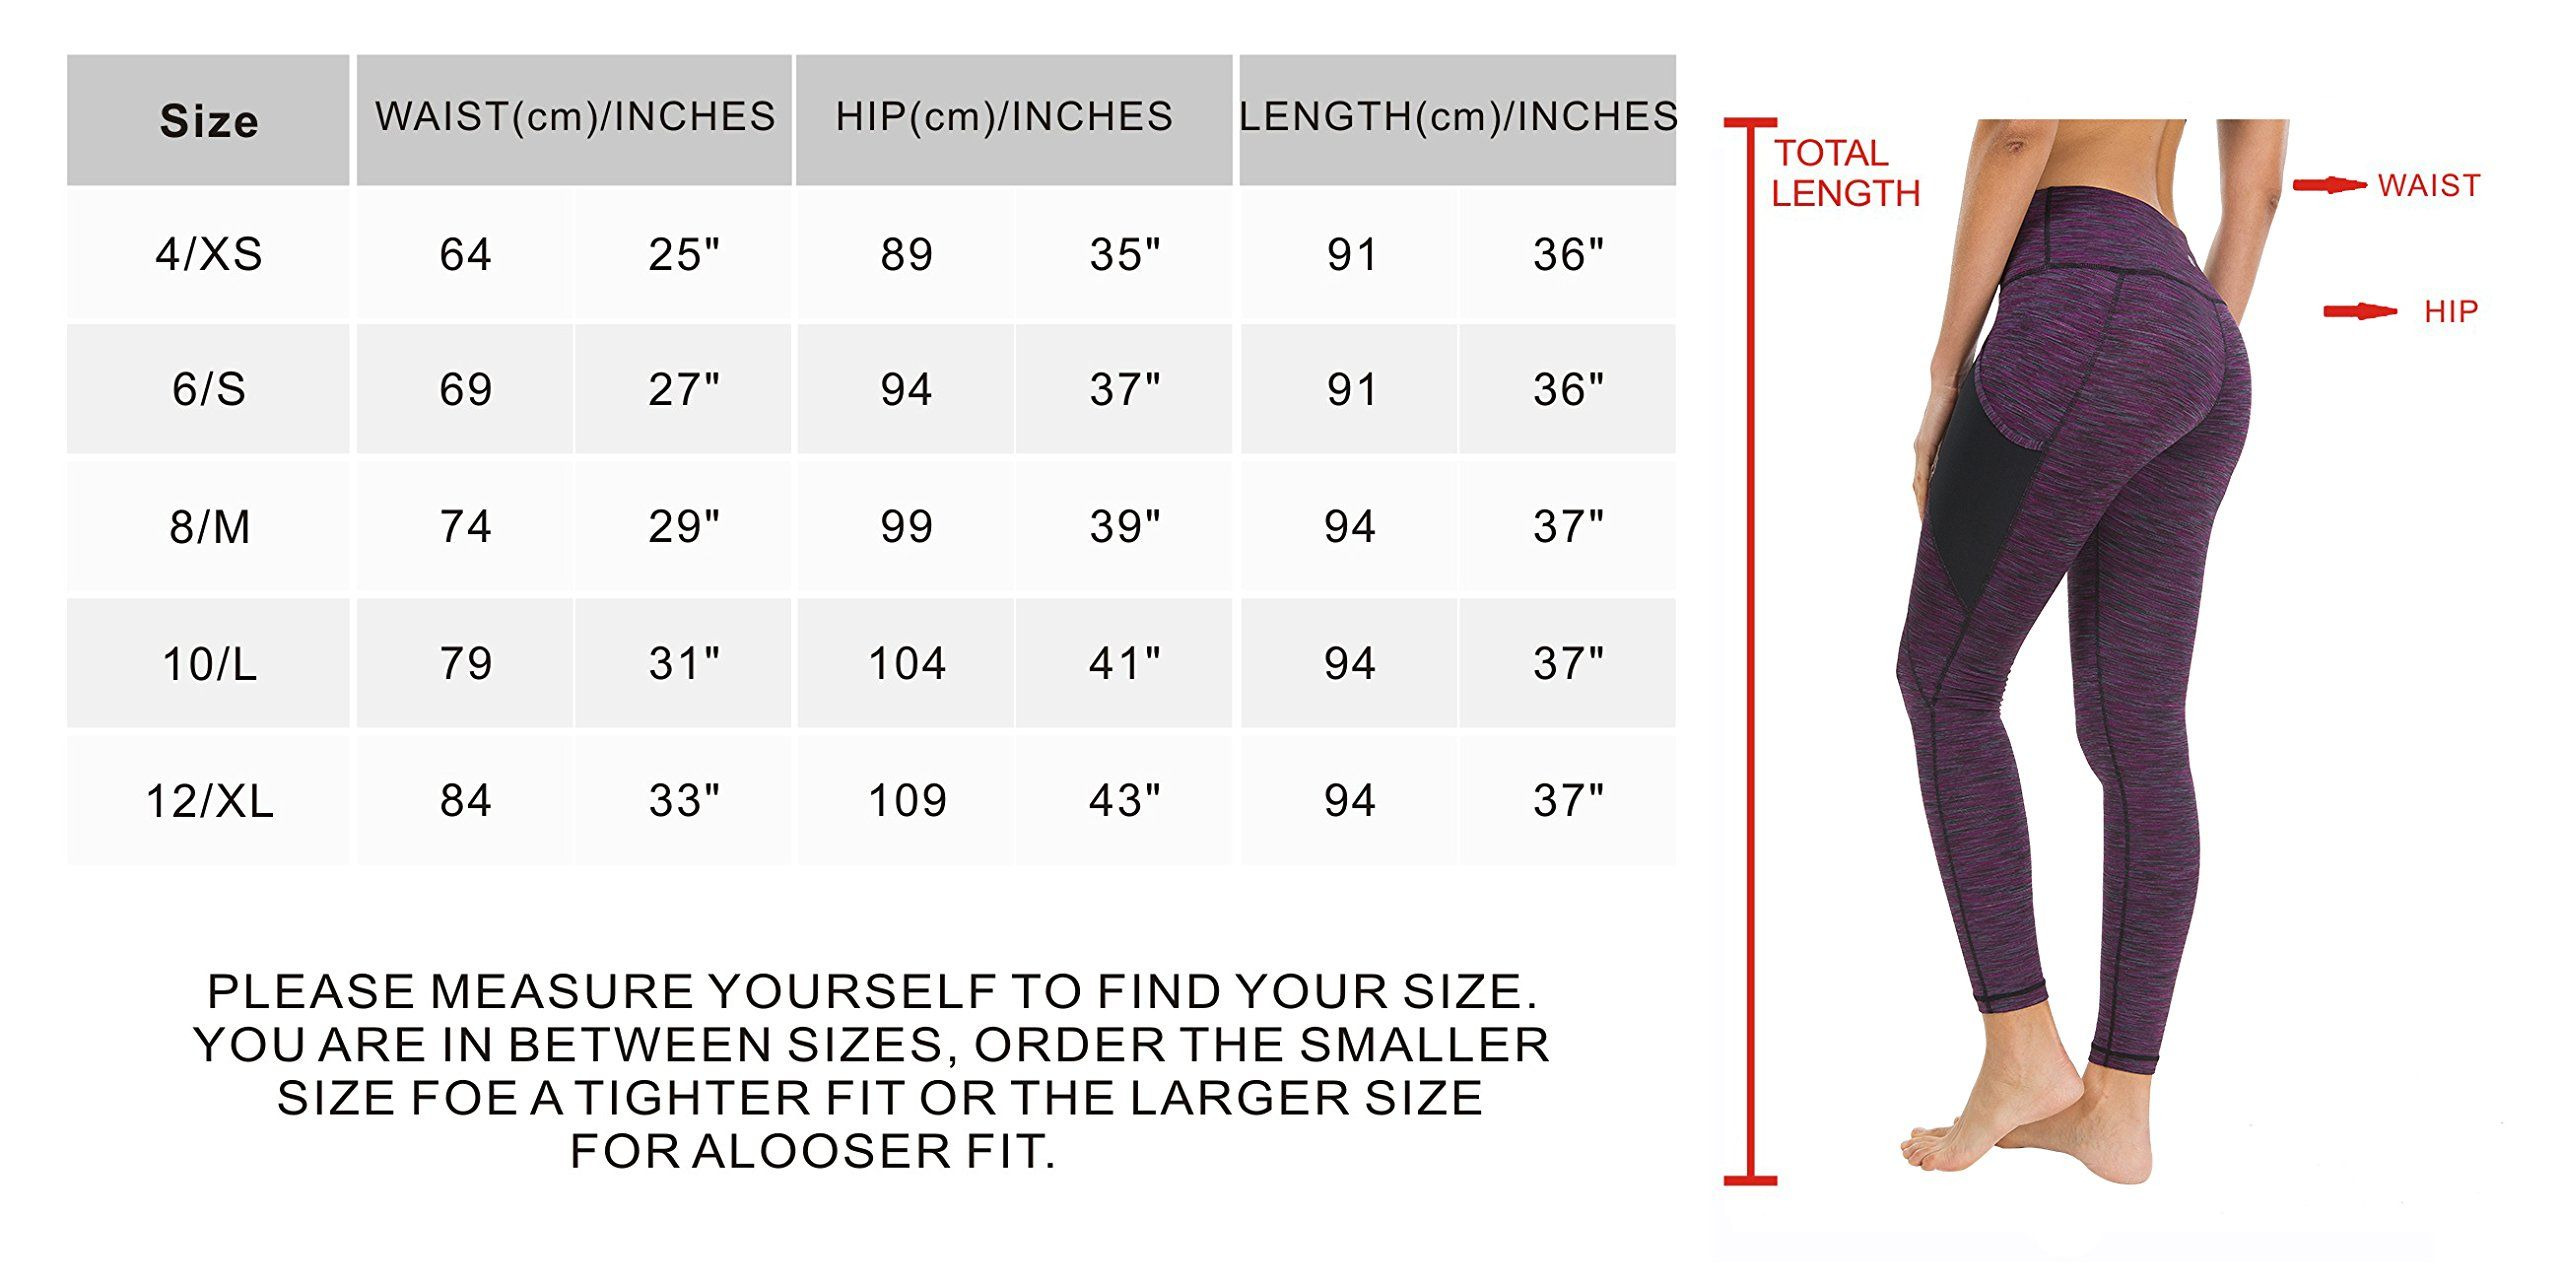 5601bc441d869c Queenie Ke Women Yoga Leggings Power Flex Mesh High Waist 3 Phone Pocket  Gym Running Tights Size XS Color Purple Space Dye Side Pockets *** Continue  to the ...